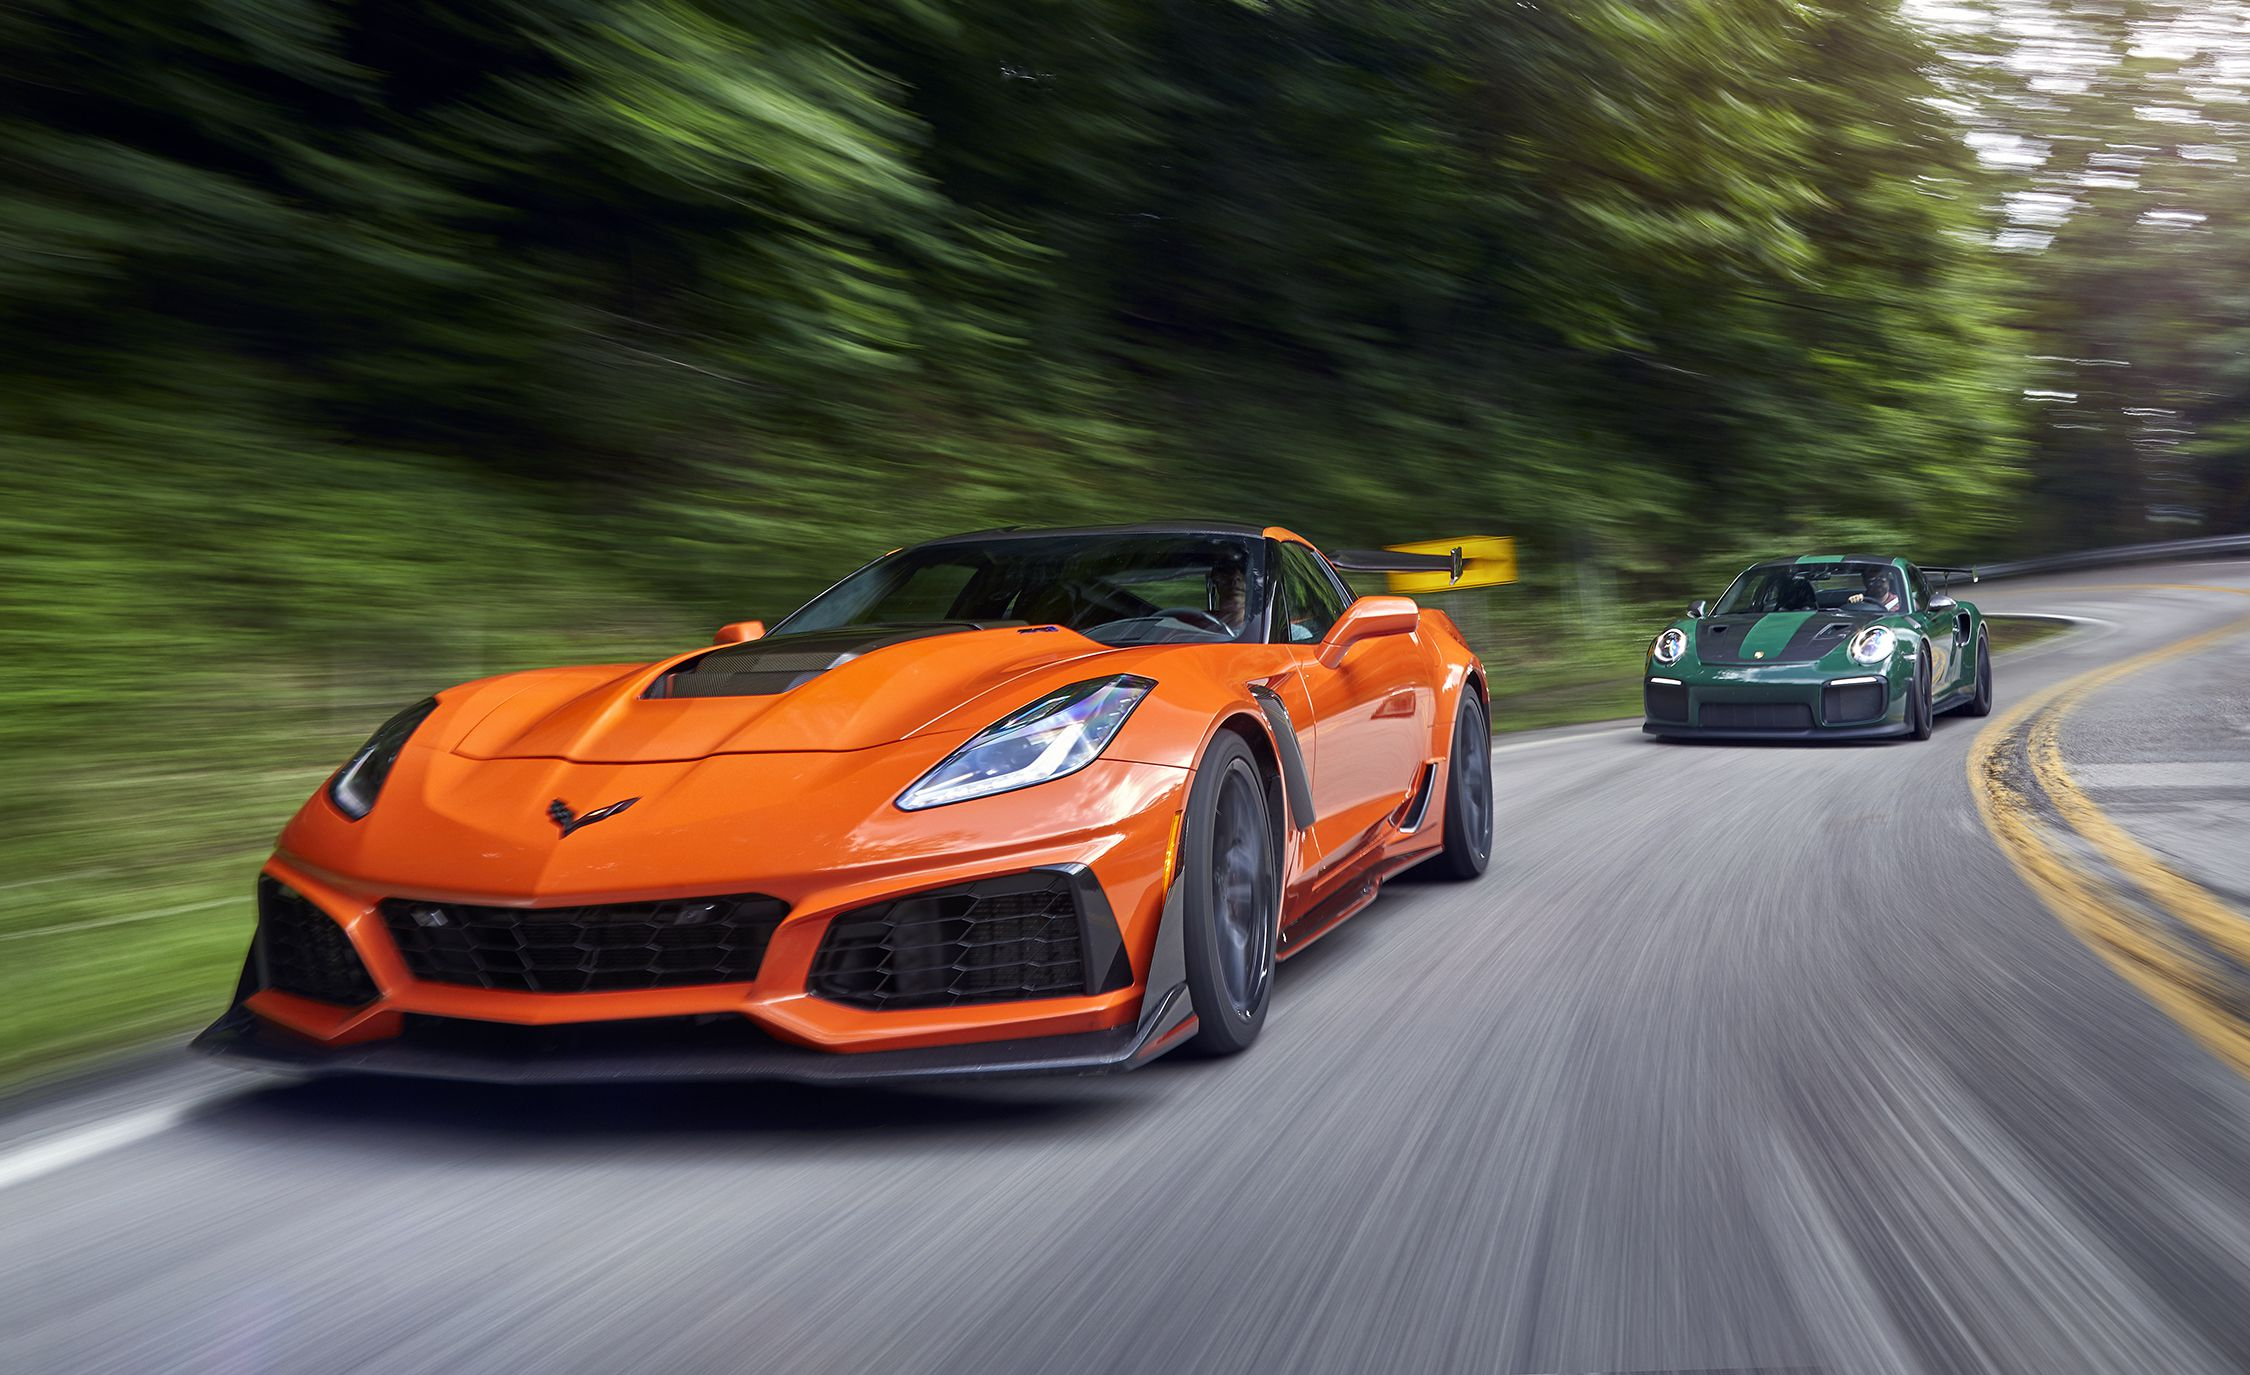 2019 Chevrolet Corvette ZR1 and 2018 Porsche 911 GT2 RS Front Three-Quarter Wallpapers (2)